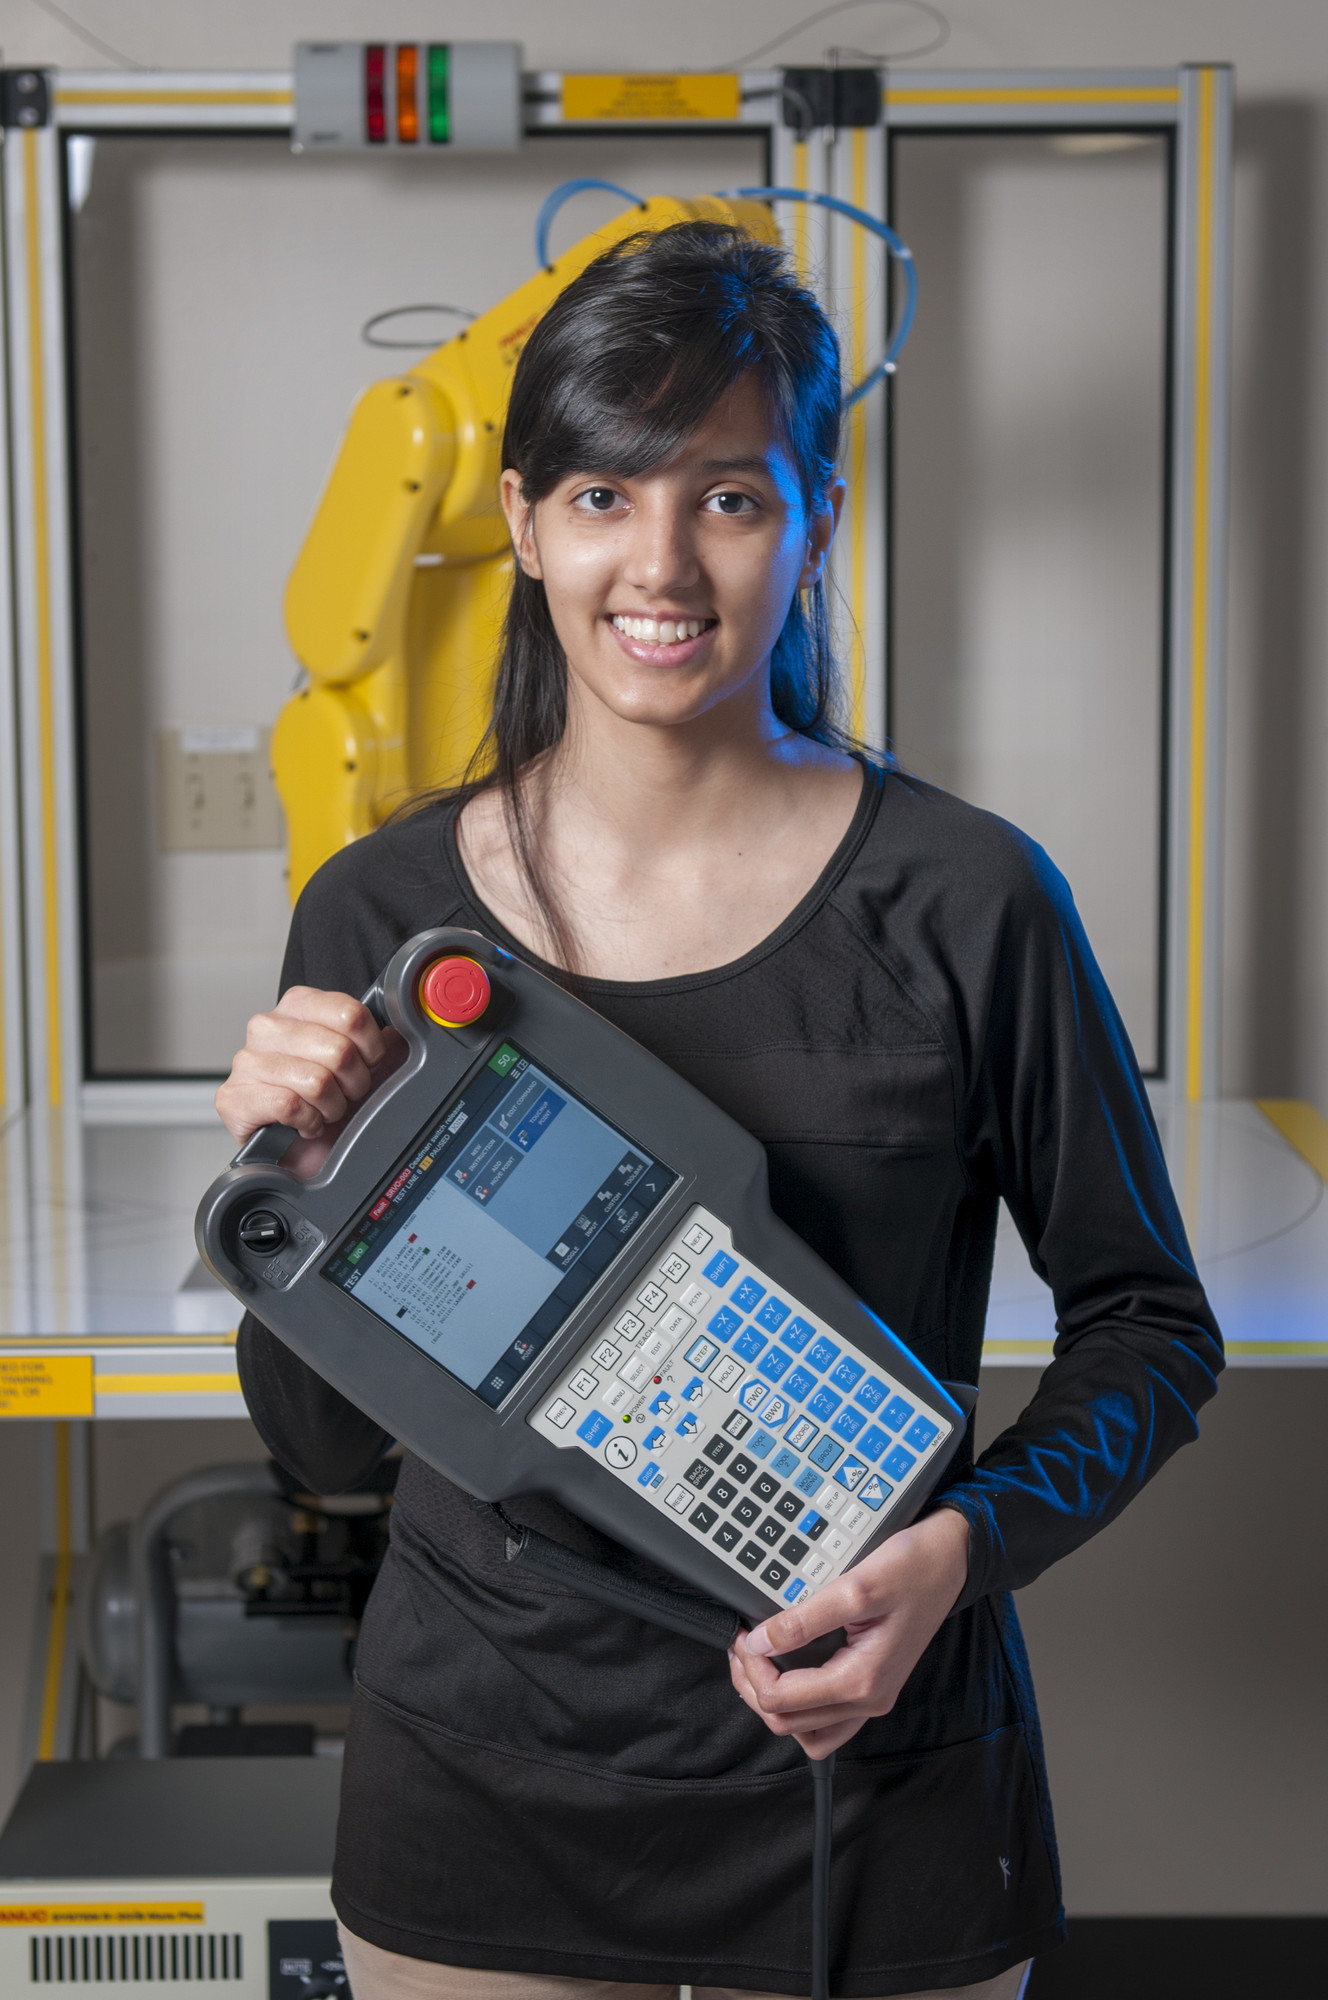 Woman engineering student